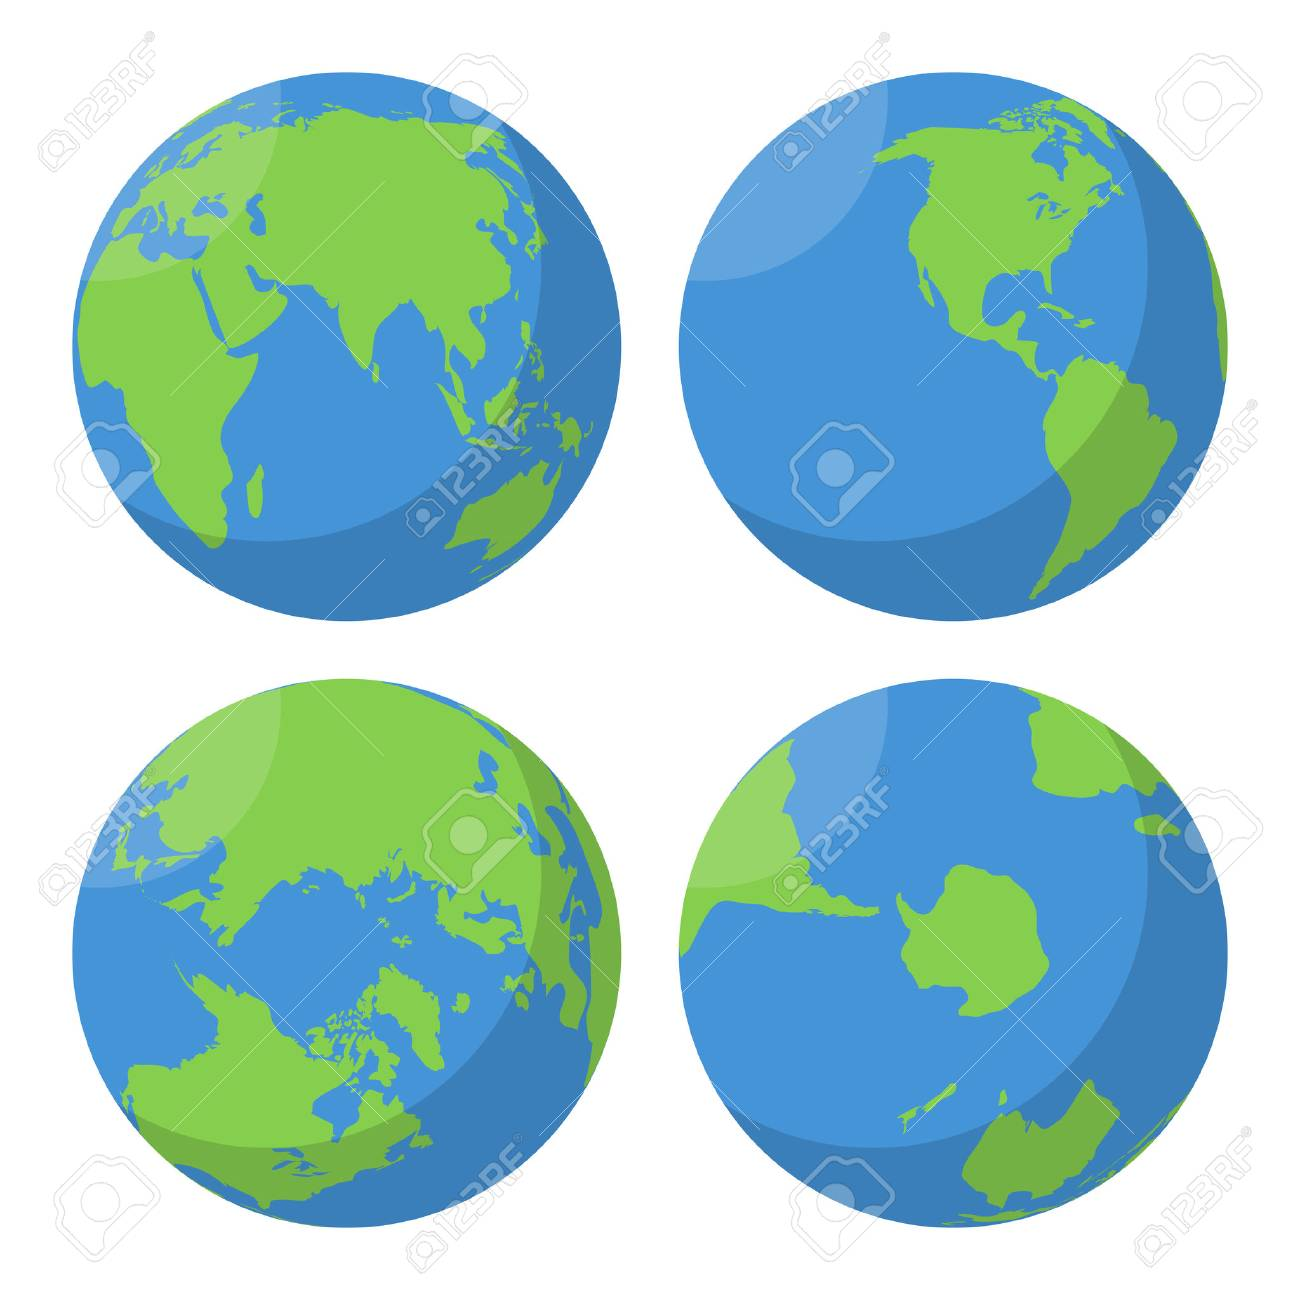 flat earth globe vector icons set planet map world illustration rh 123rf com globe vector black and white globe vector art